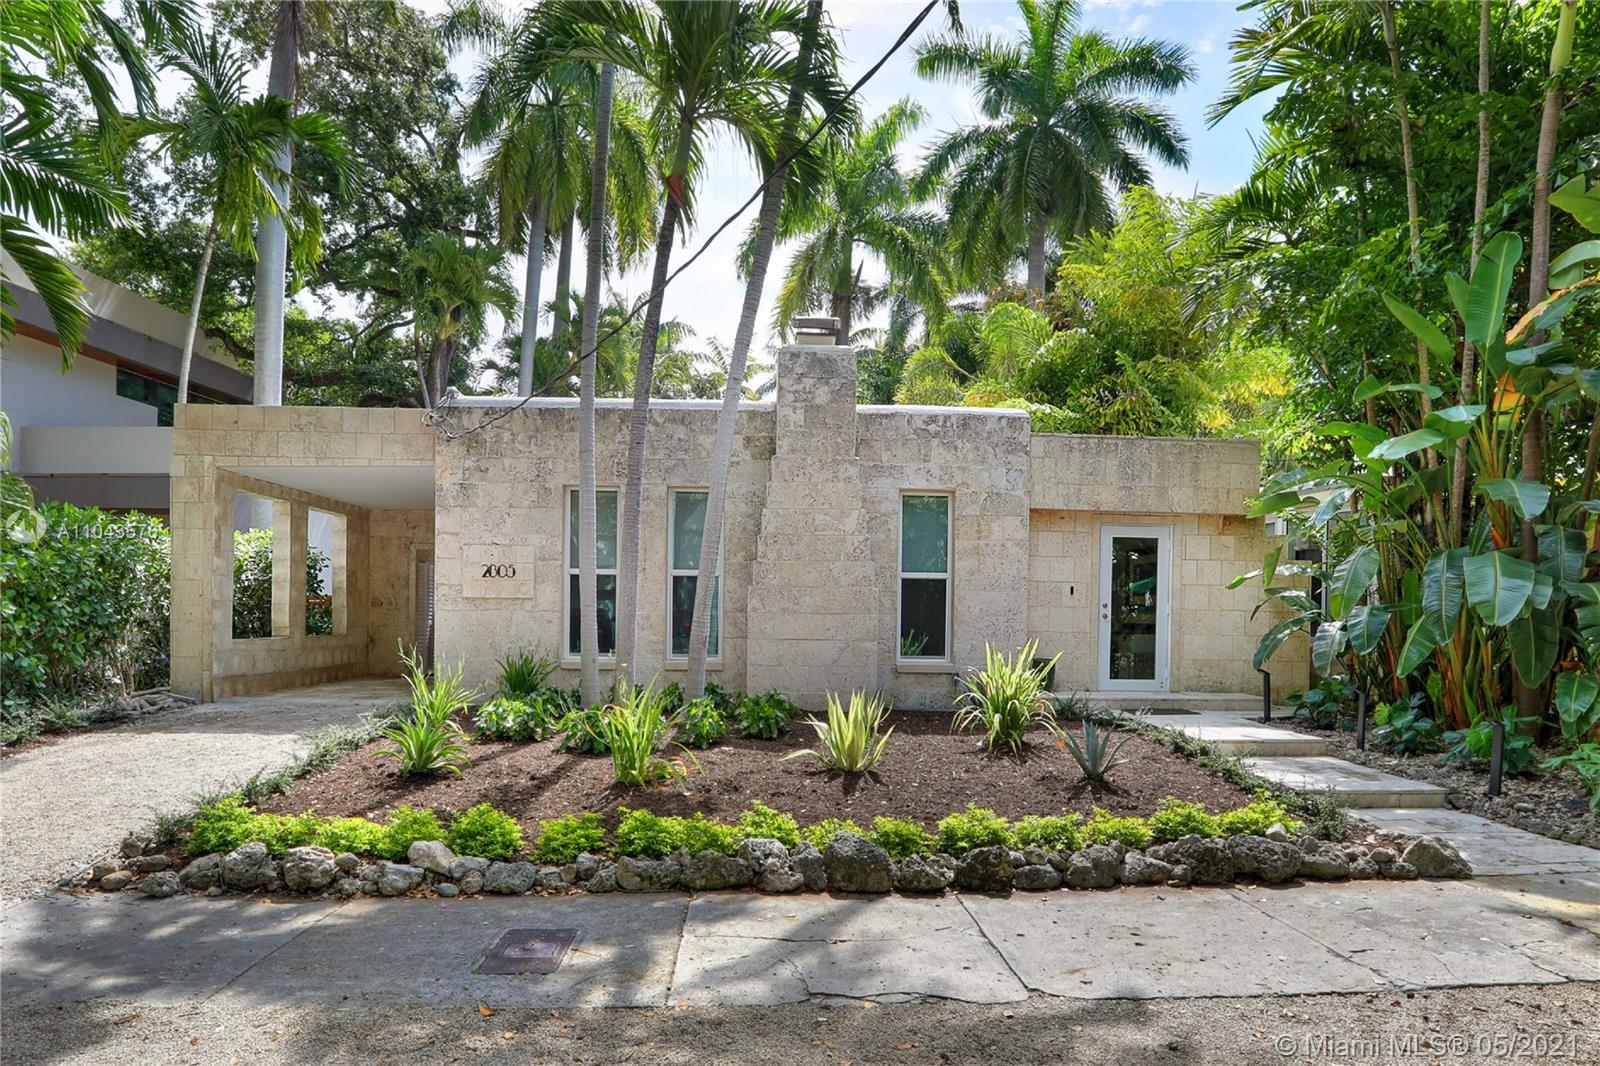 """Unique """"Oolitic Limestone"""" bungalow on a quiet, tree-lined North Grove street. Totally rebuilt by the current owners (completed 2021) to create a blending of the charm of Old Miami with a modern, minimalist vibe. Light-filled, open living spaces w/ original fireplace, custom built-ins, volume ceilings & beautiful wood flooring throughout. New, European-style kitchen features quartz countertops, stainless appliances & breakfast bar. Luxurious, tumbled marble bath offers an oversized, frameless glass shower. Spectacular outdoor space is an ultra-private, tranquil oasis with heated pool & spa surrounded by lush tropical landscaping. Close to the Grove village center's galleries, boutiques, cafes and bayfront parks & marinas. Minutes to downtown, MIA, Coral Gables, Key Biscayne & the Beaches"""